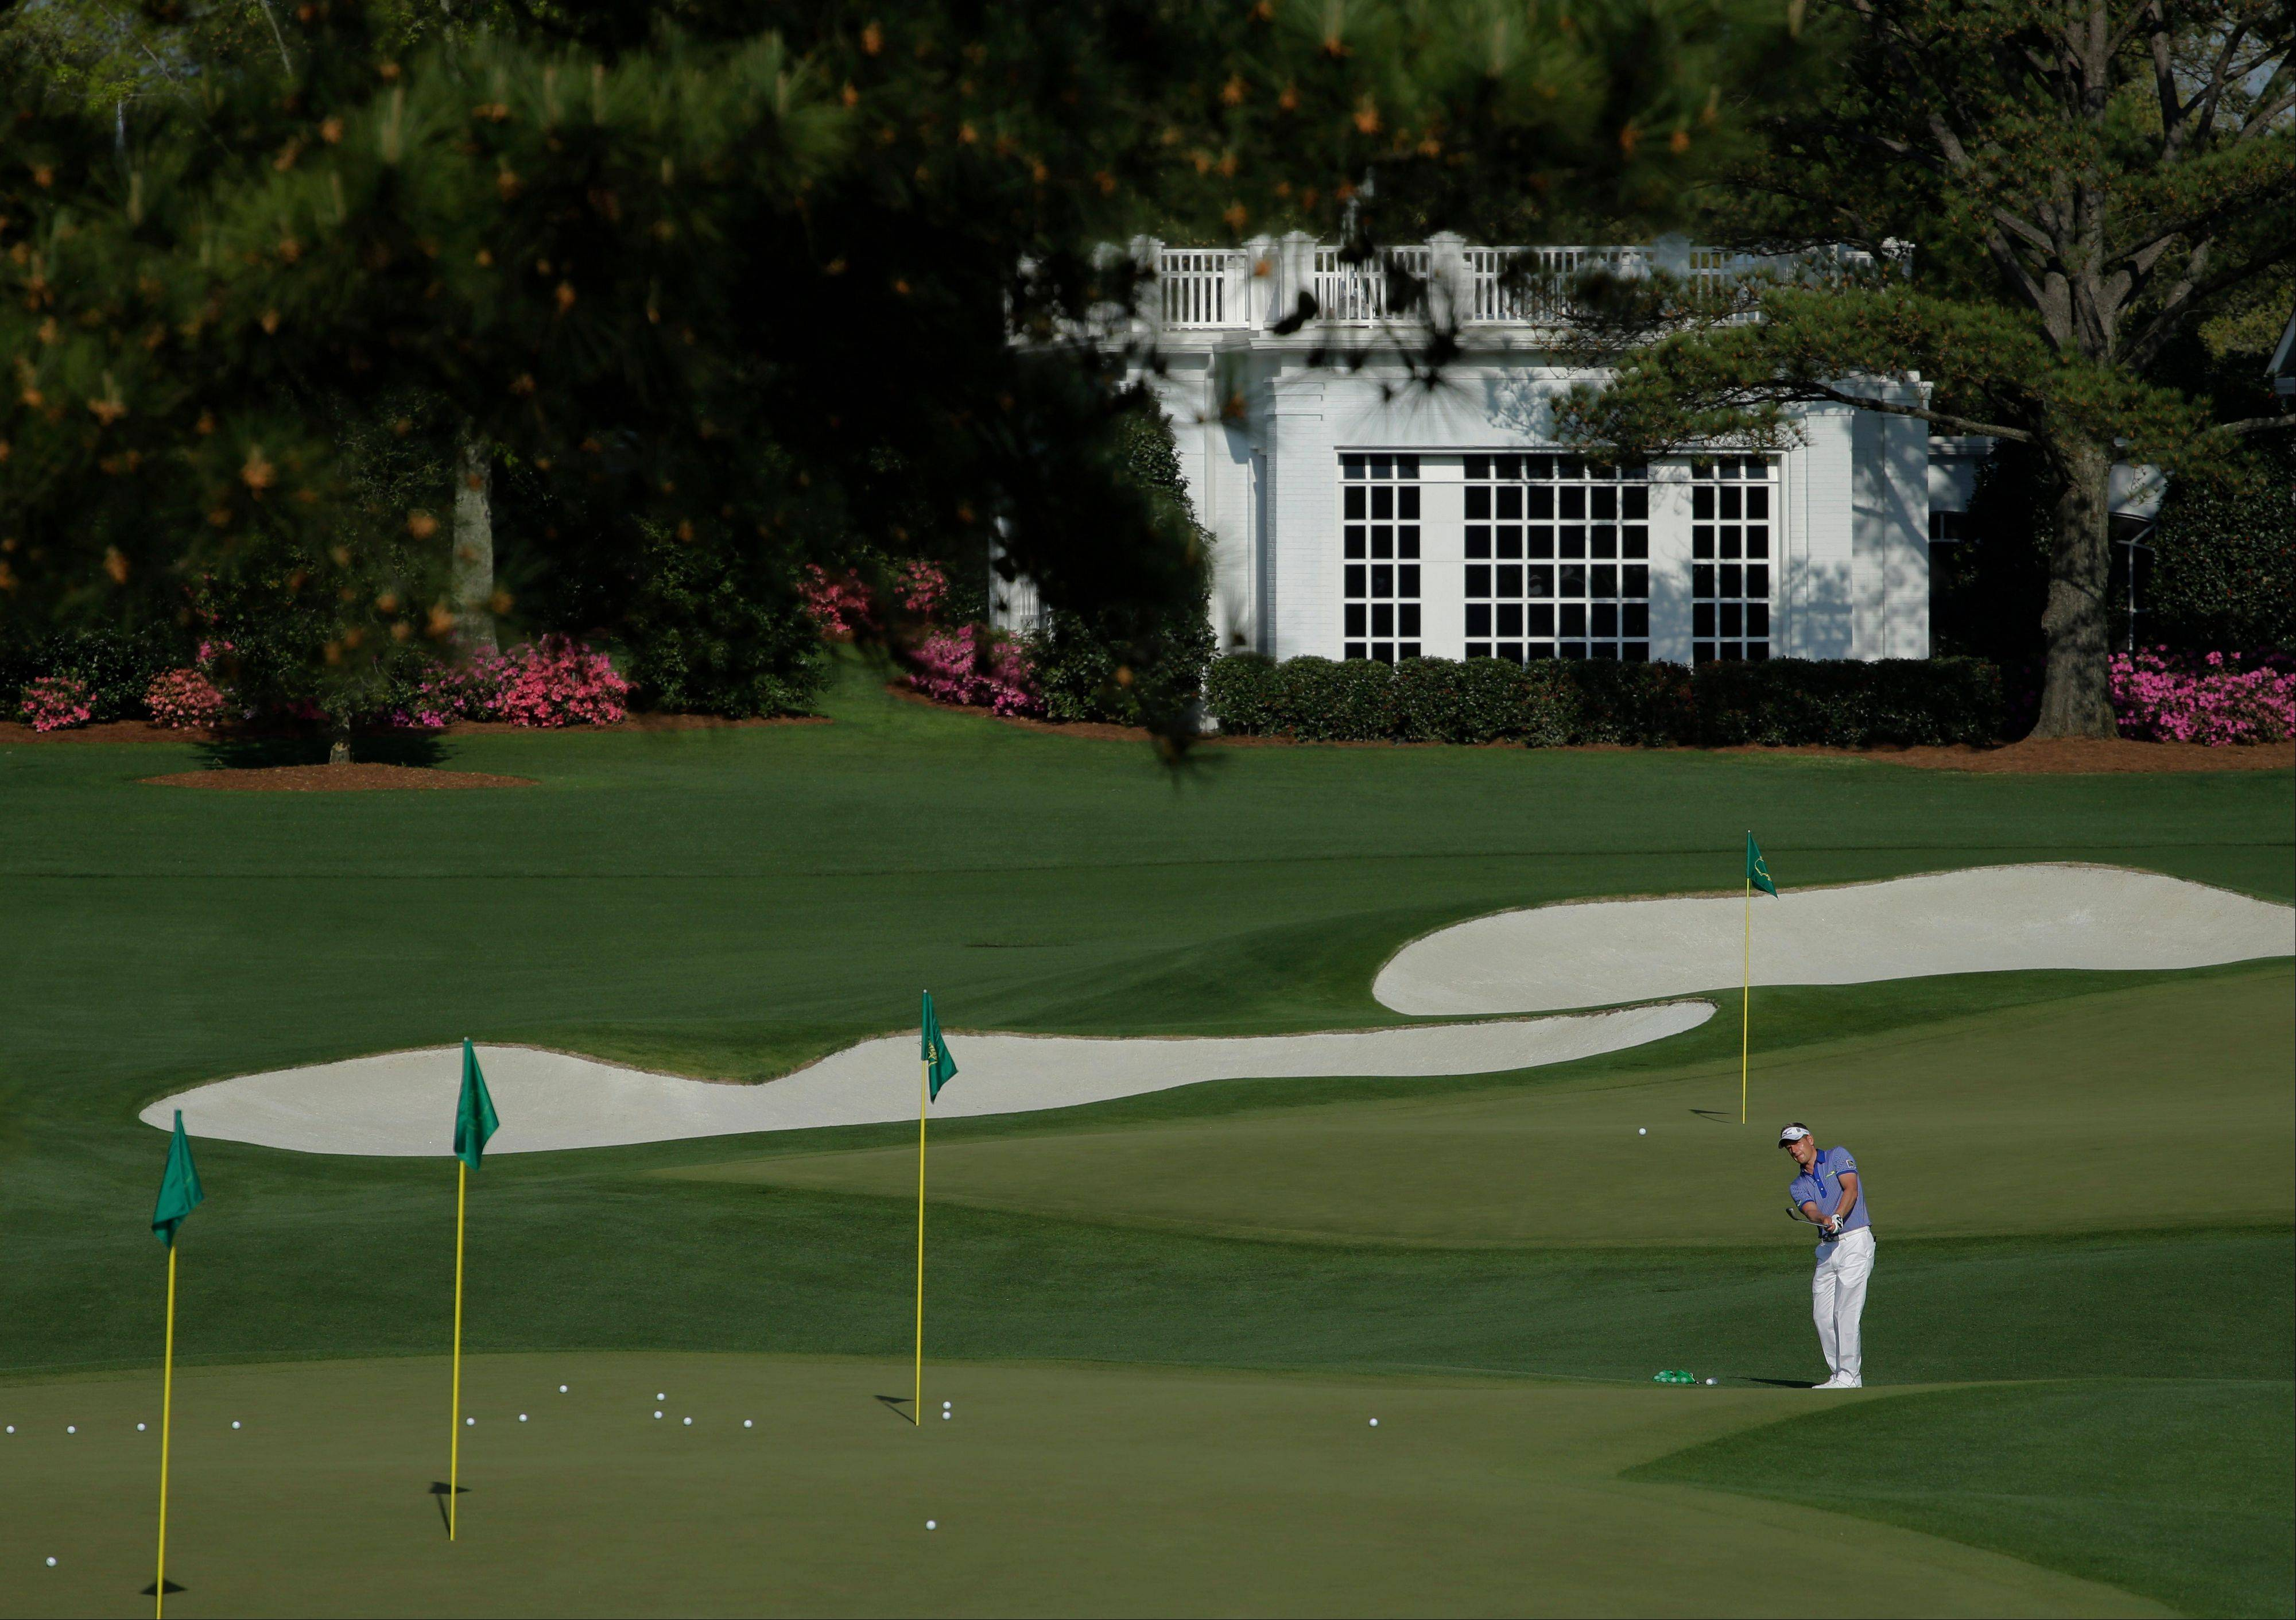 Luke Donald, a Northwestern grad from England, chips on the driving range during a practice round for the Masters golf tournament Tuesday in Augusta, Ga.